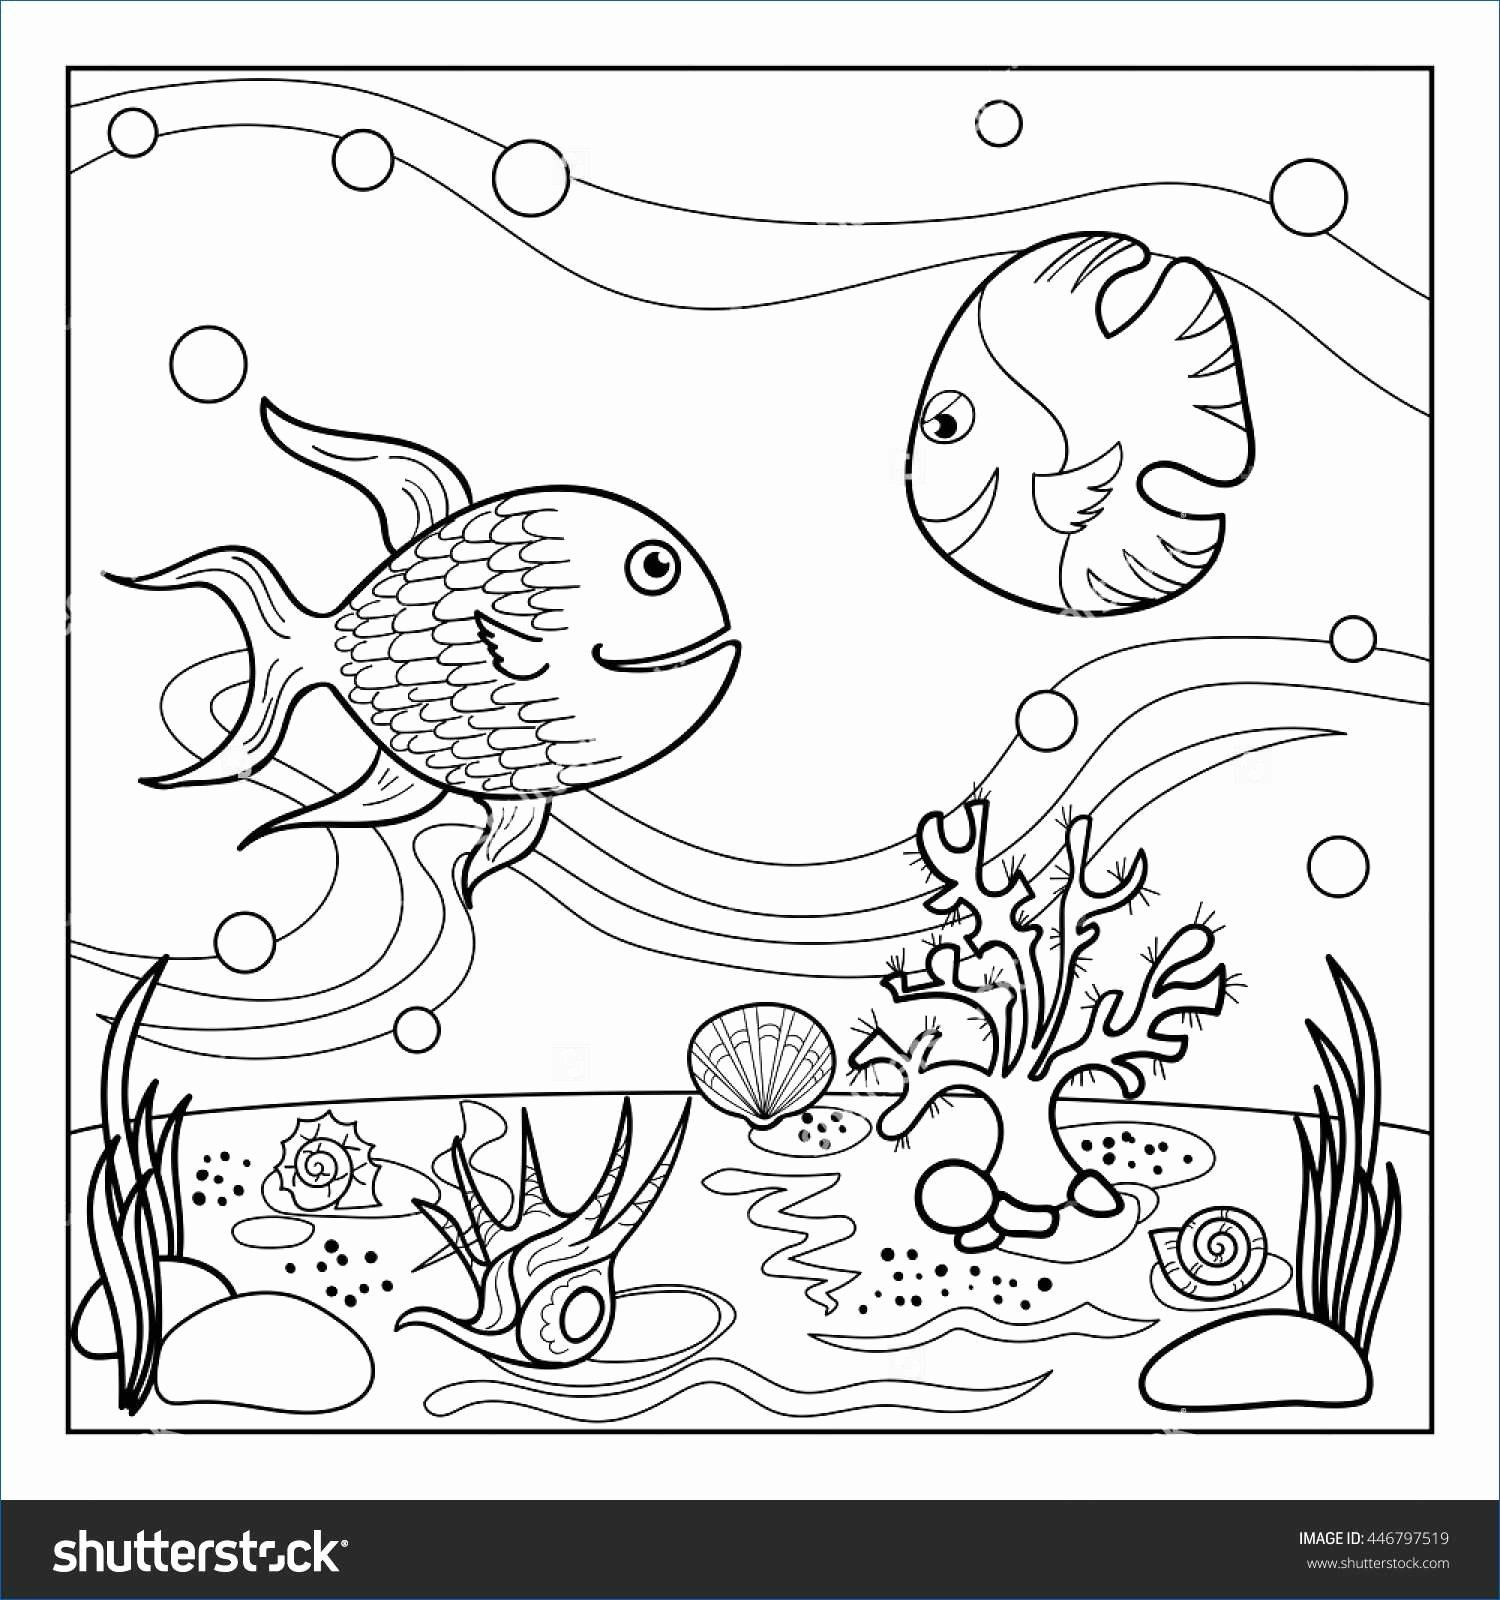 Ipad Pro Coloring Book App Lovely Coloring Pages Free Coloring Apps Coloring Pagess In 2020 Unicorn Coloring Pages Animal Coloring Pages Paw Patrol Coloring Pages